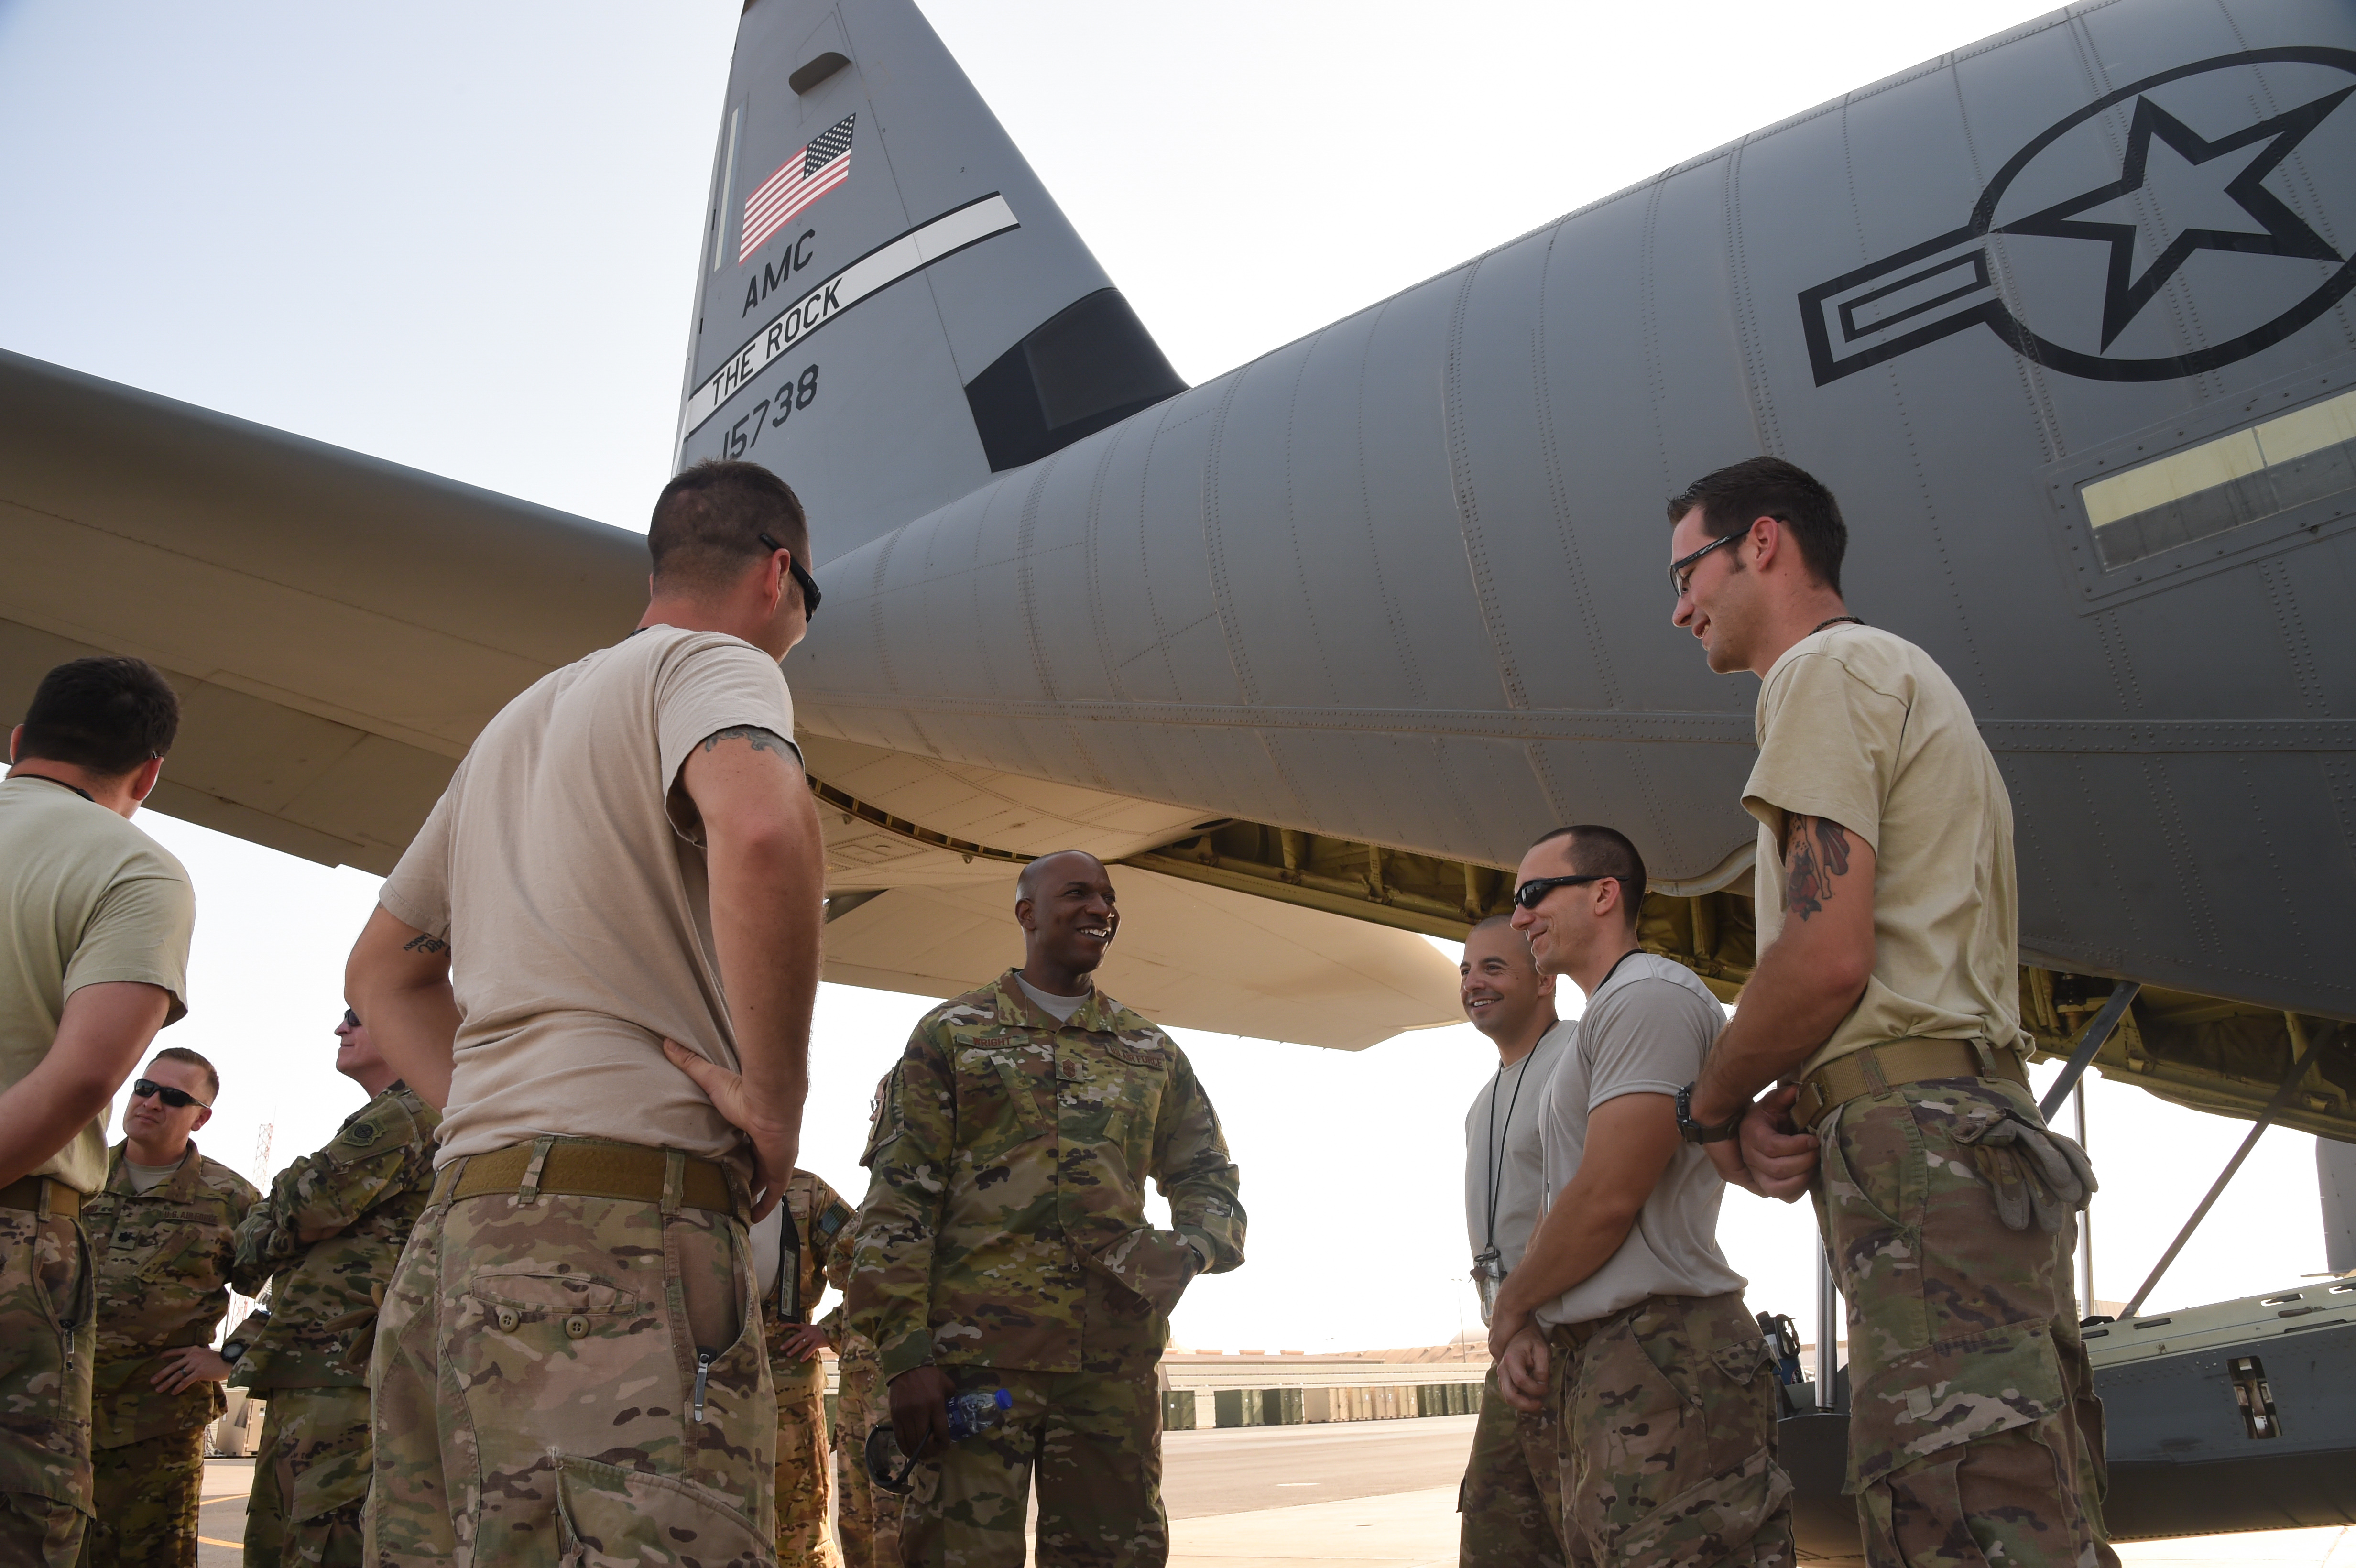 U.S. Air Force Chief Master Sgt. of the Air Force Kaleth Wright speaks with airmen from the 75th Expeditionary Airlift Squadron during a visit to Camp Lemonnier, Djibouti, April 11, 2017. Wilson and Wright visited CJTF-HOA and other tenant commands with Wright to gain a better understanding of Air Force integration and missions in the U.S. Africa Command area of responsibility. (U.S. Air National Guard photo by Staff Sgt. Penny Snoozy)